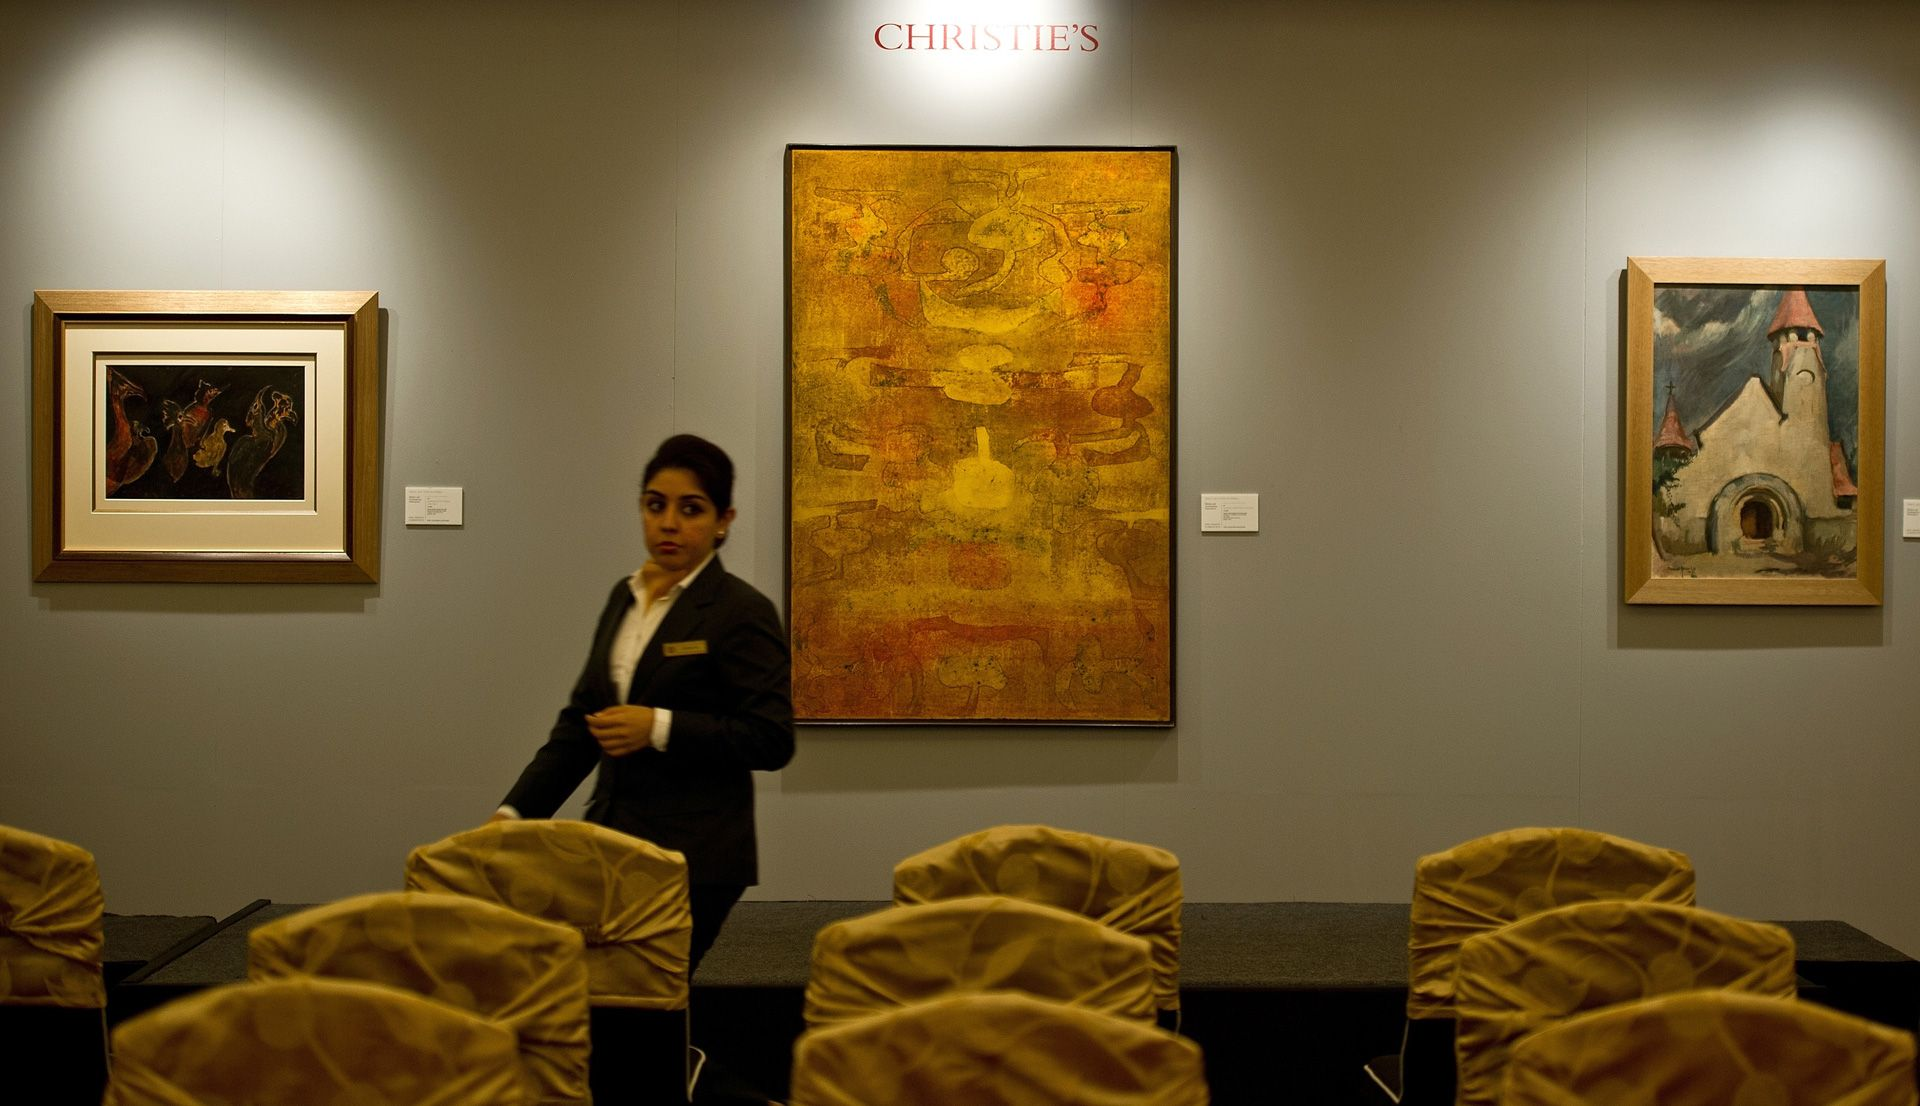 Indian painting sells for record $4.4 mn at Christie's auction